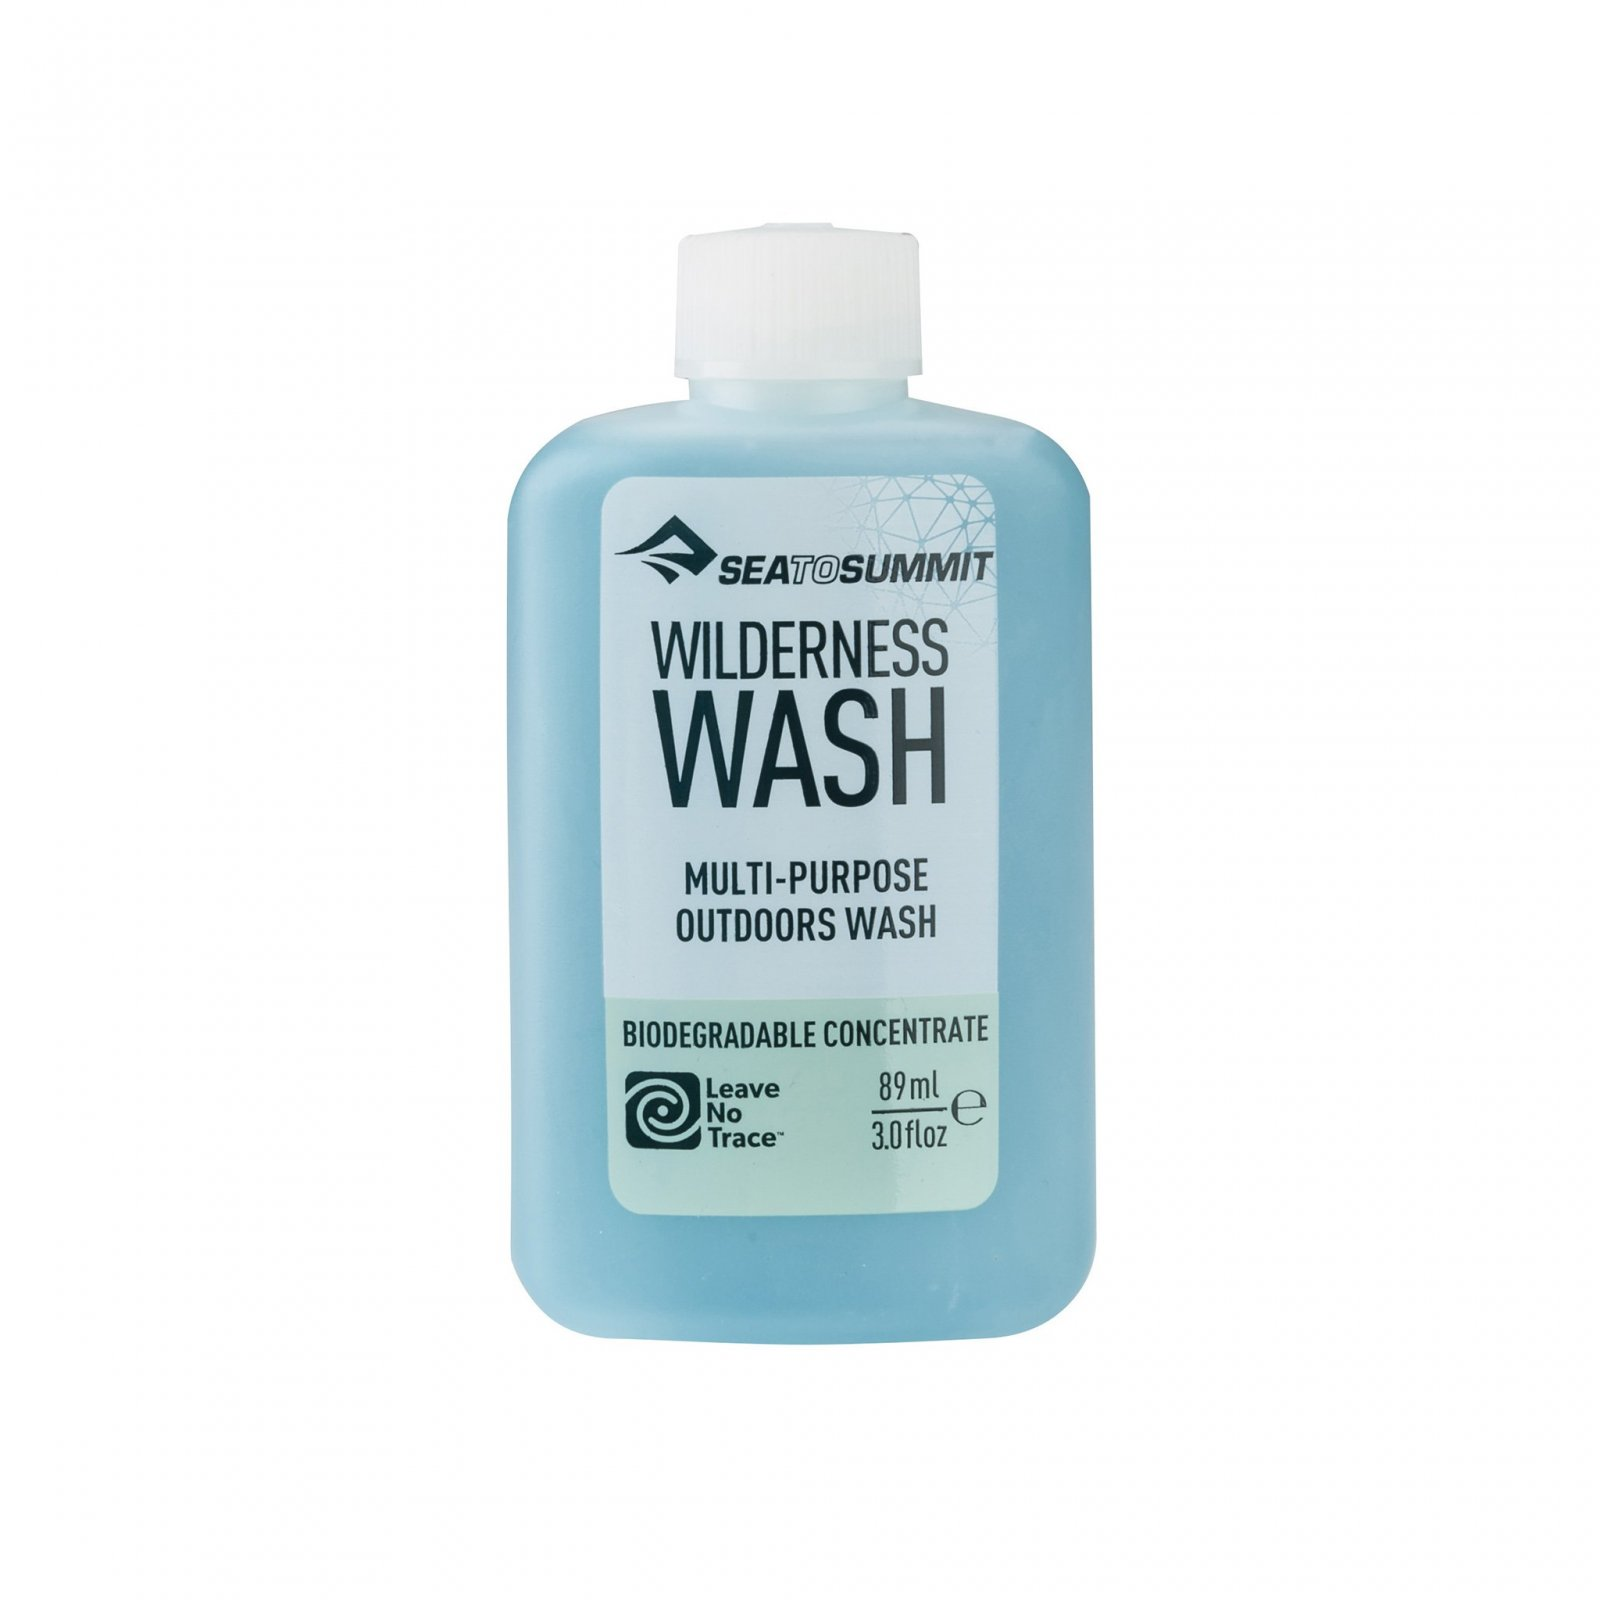 Sea to Summit Wilderness Wash Biodegradable Soap 3oz